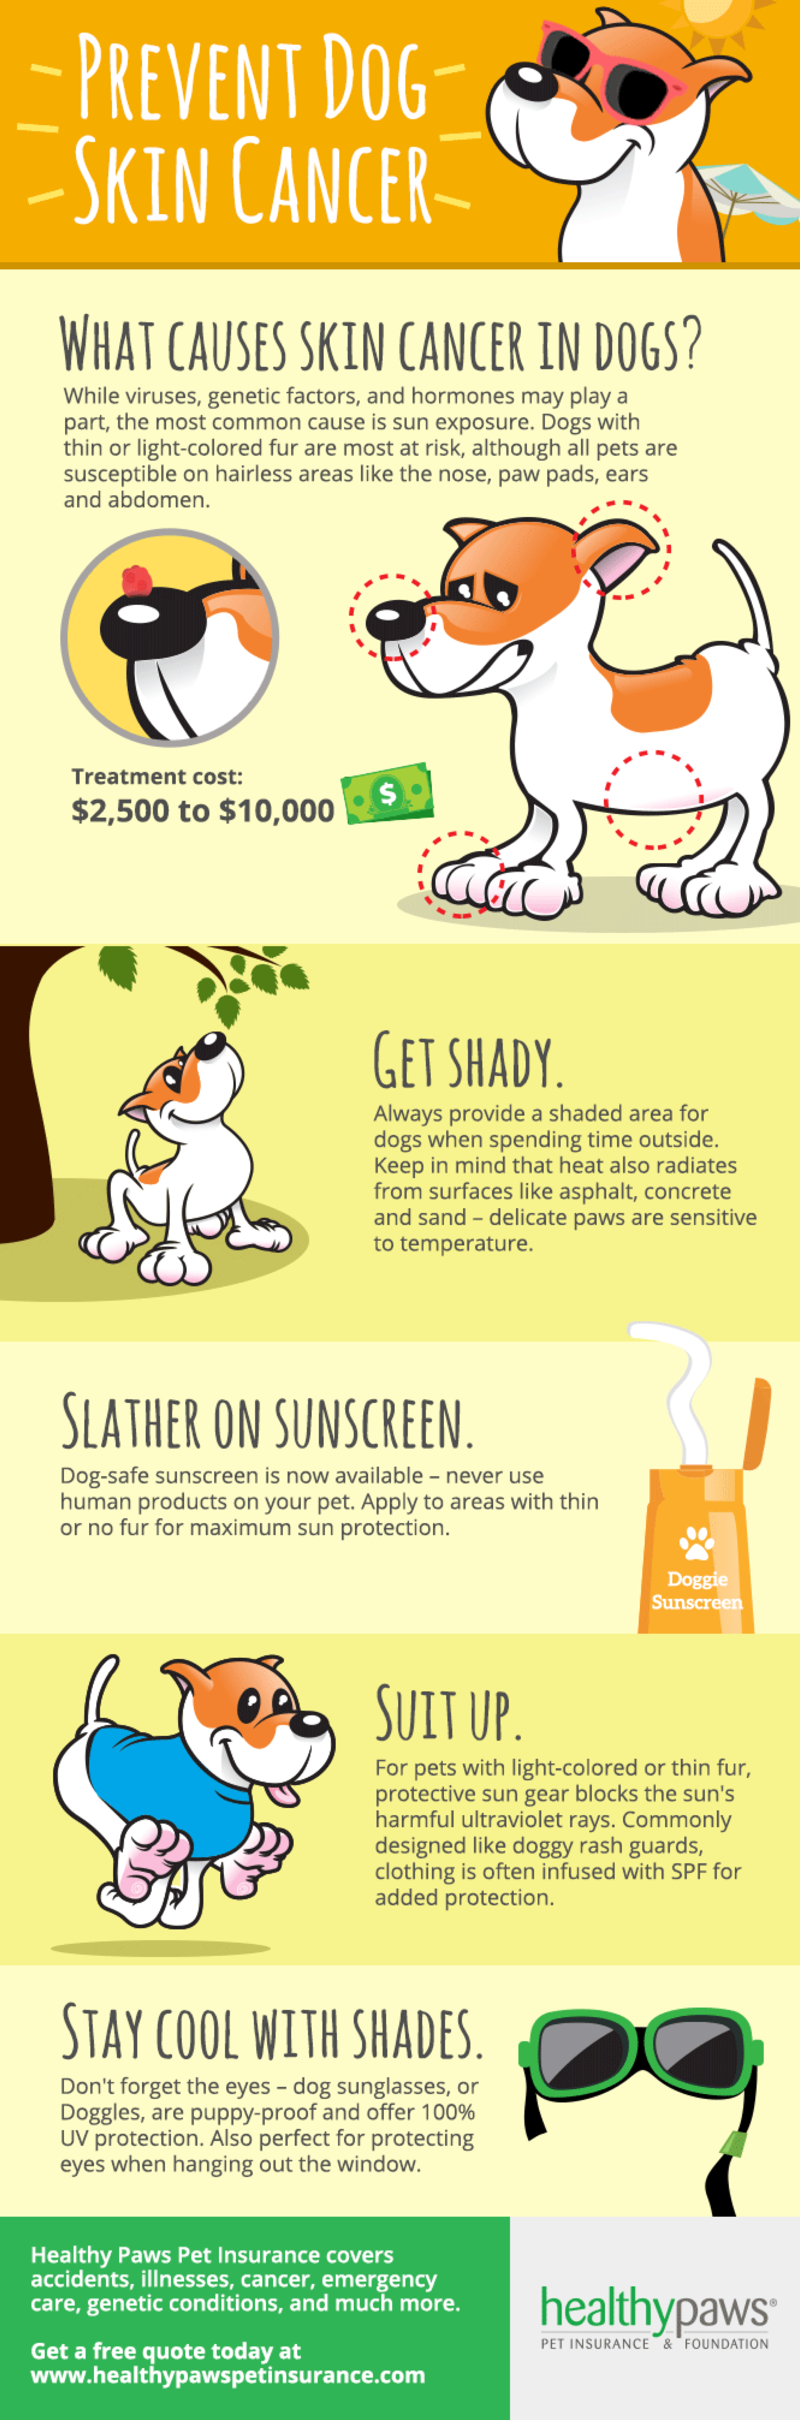 dog skin cancer